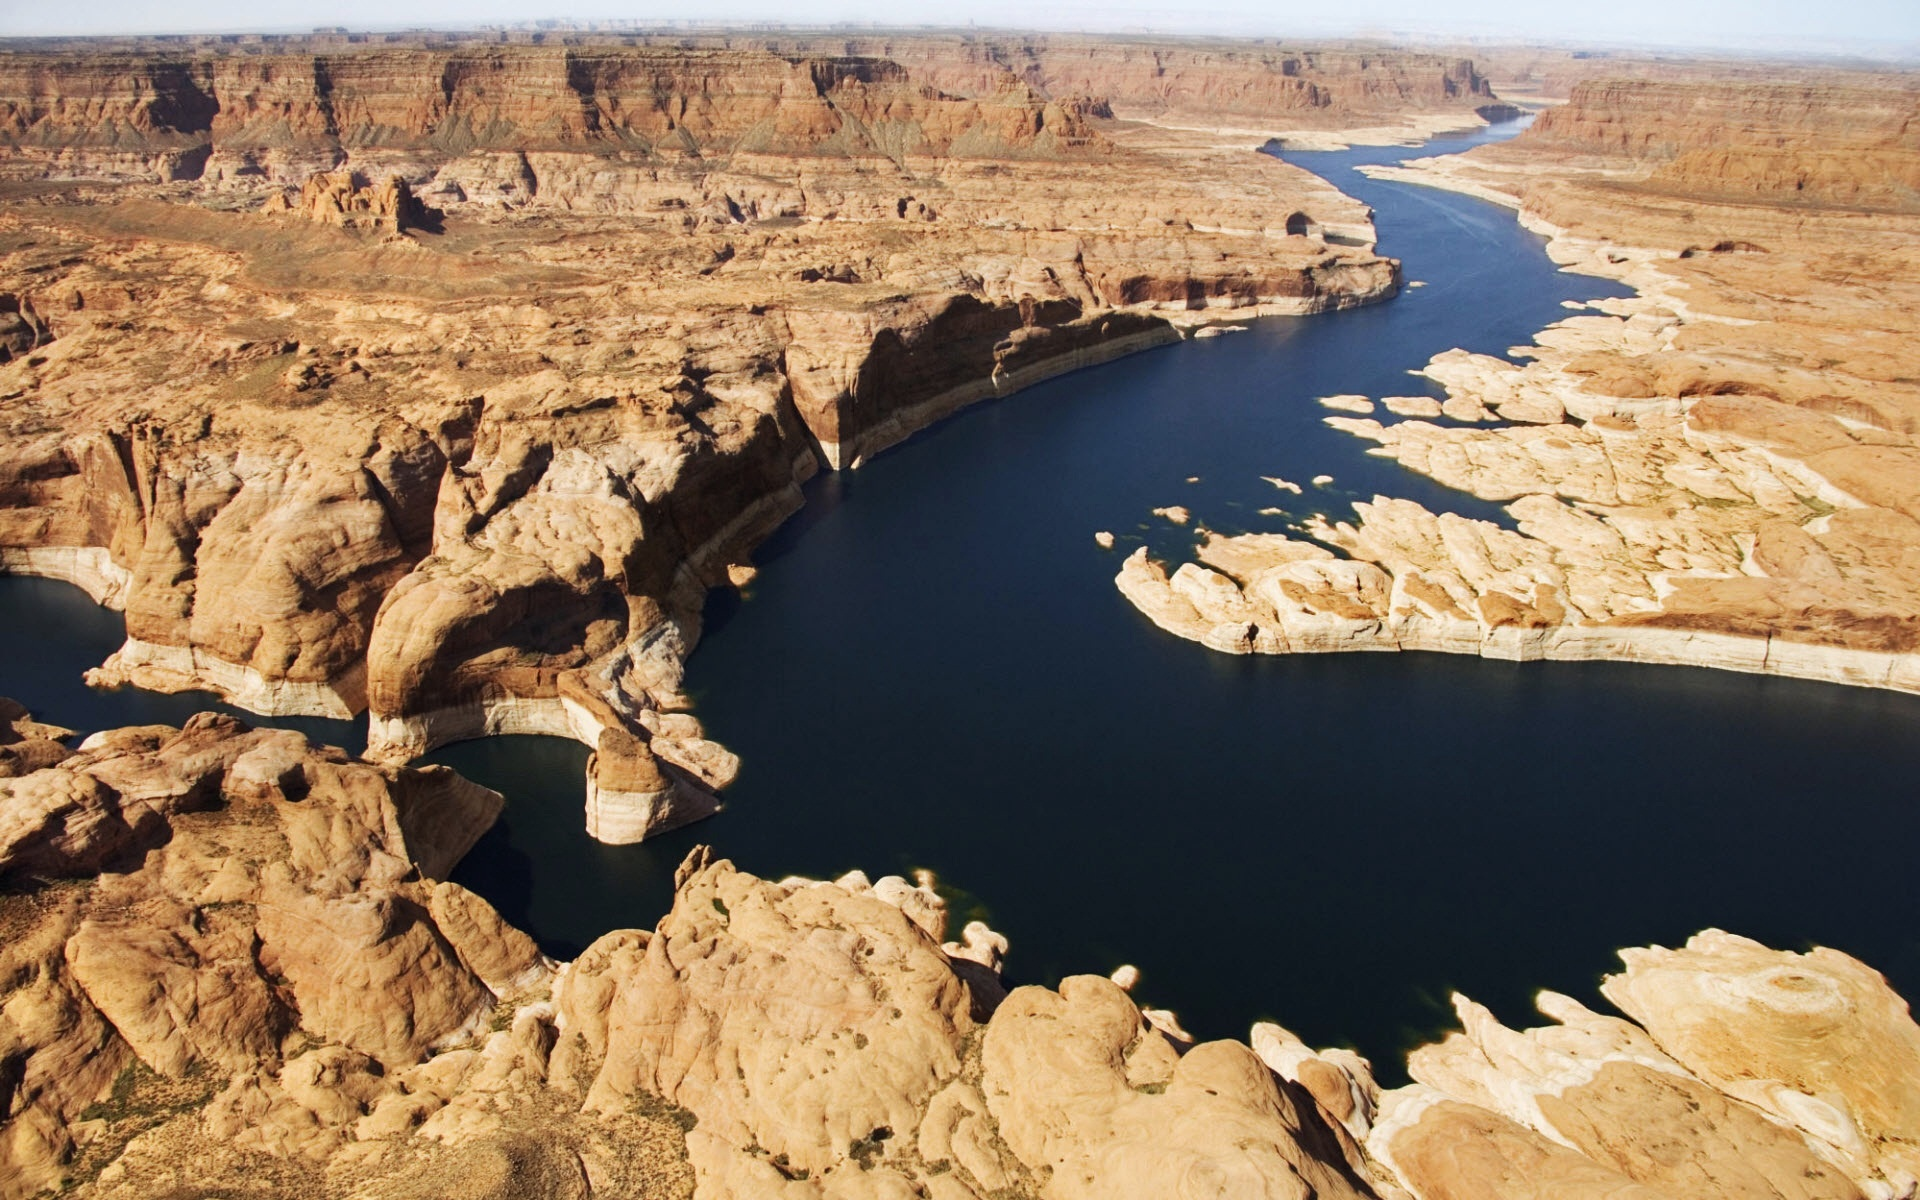 glen canyon utah wallpapers in jpg format for free download